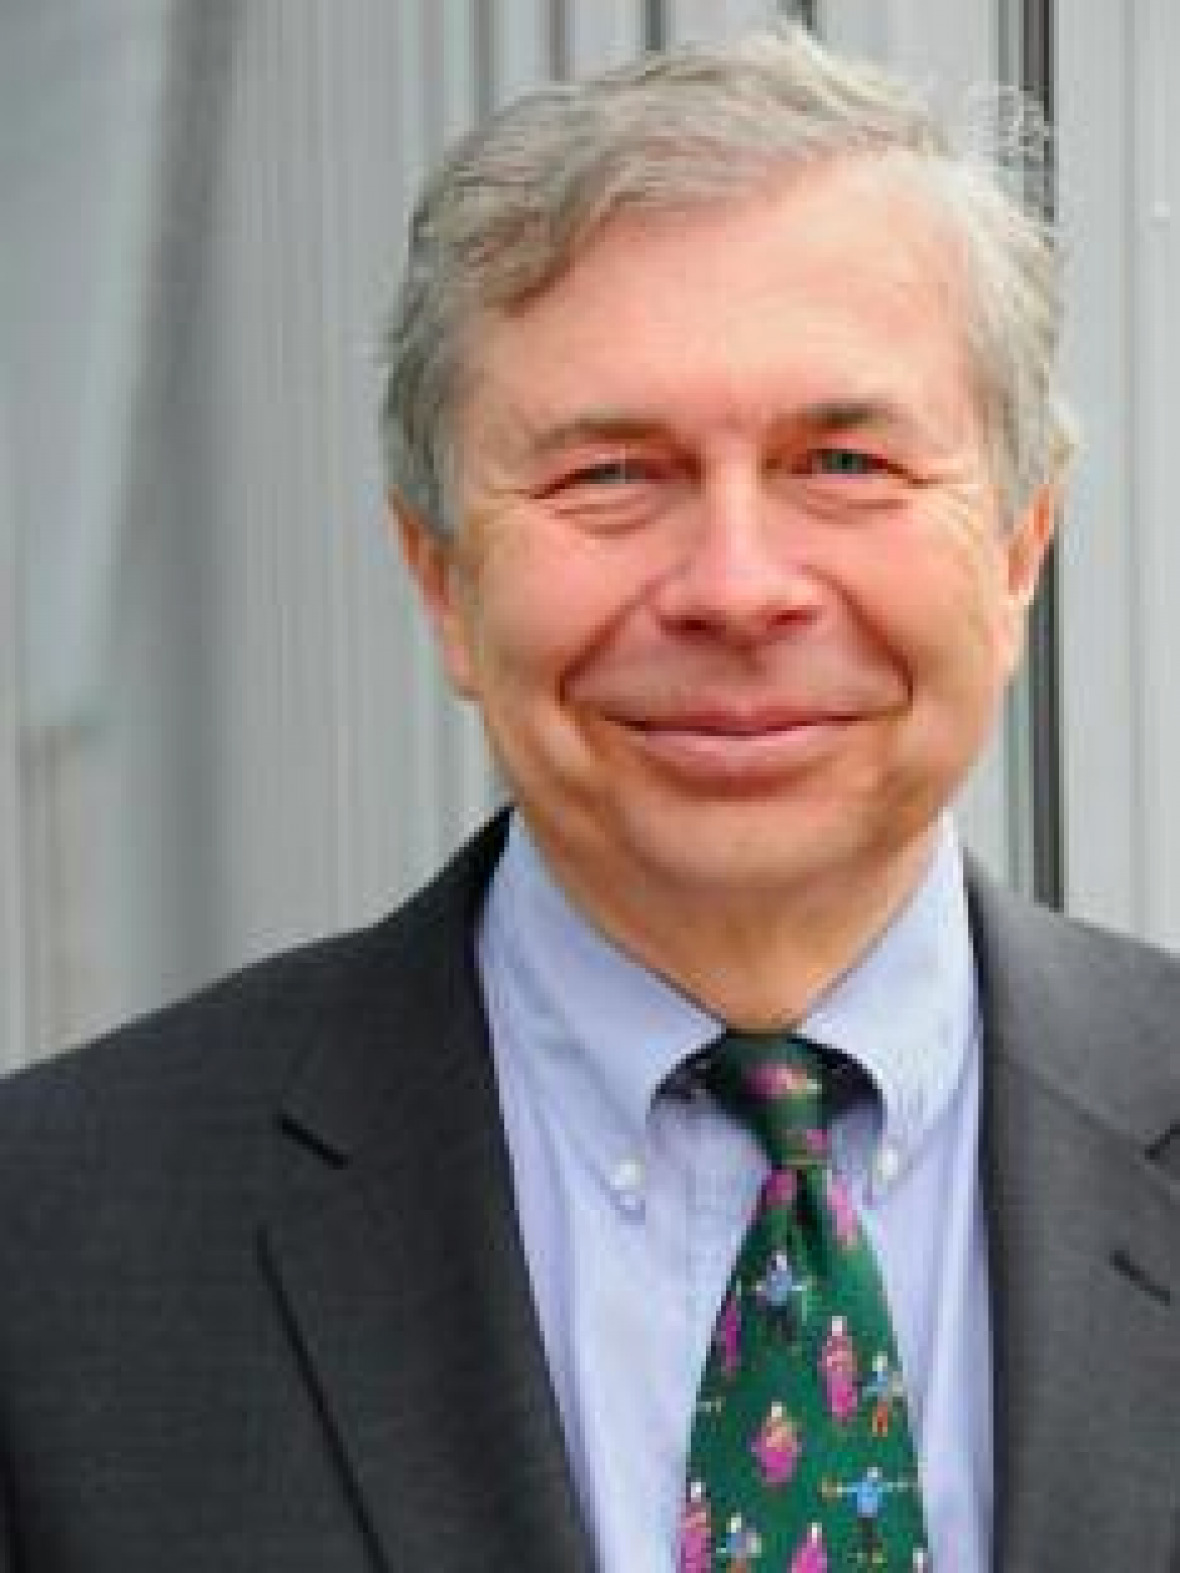 Before he joined the Climate Service Center, Guy Brasseur headed the Earth and Sun Systems Laboratory in Boulder, Colorado. From 1999 to 2005 he was also Director of the Max Planck Institute for Meteorology and head of the German Climate Computing Center in Hamburg. He is one of the main authors of the IPCC Fourth Assessment Report, for which the Nobel Peace Prize was awarded in 2007.